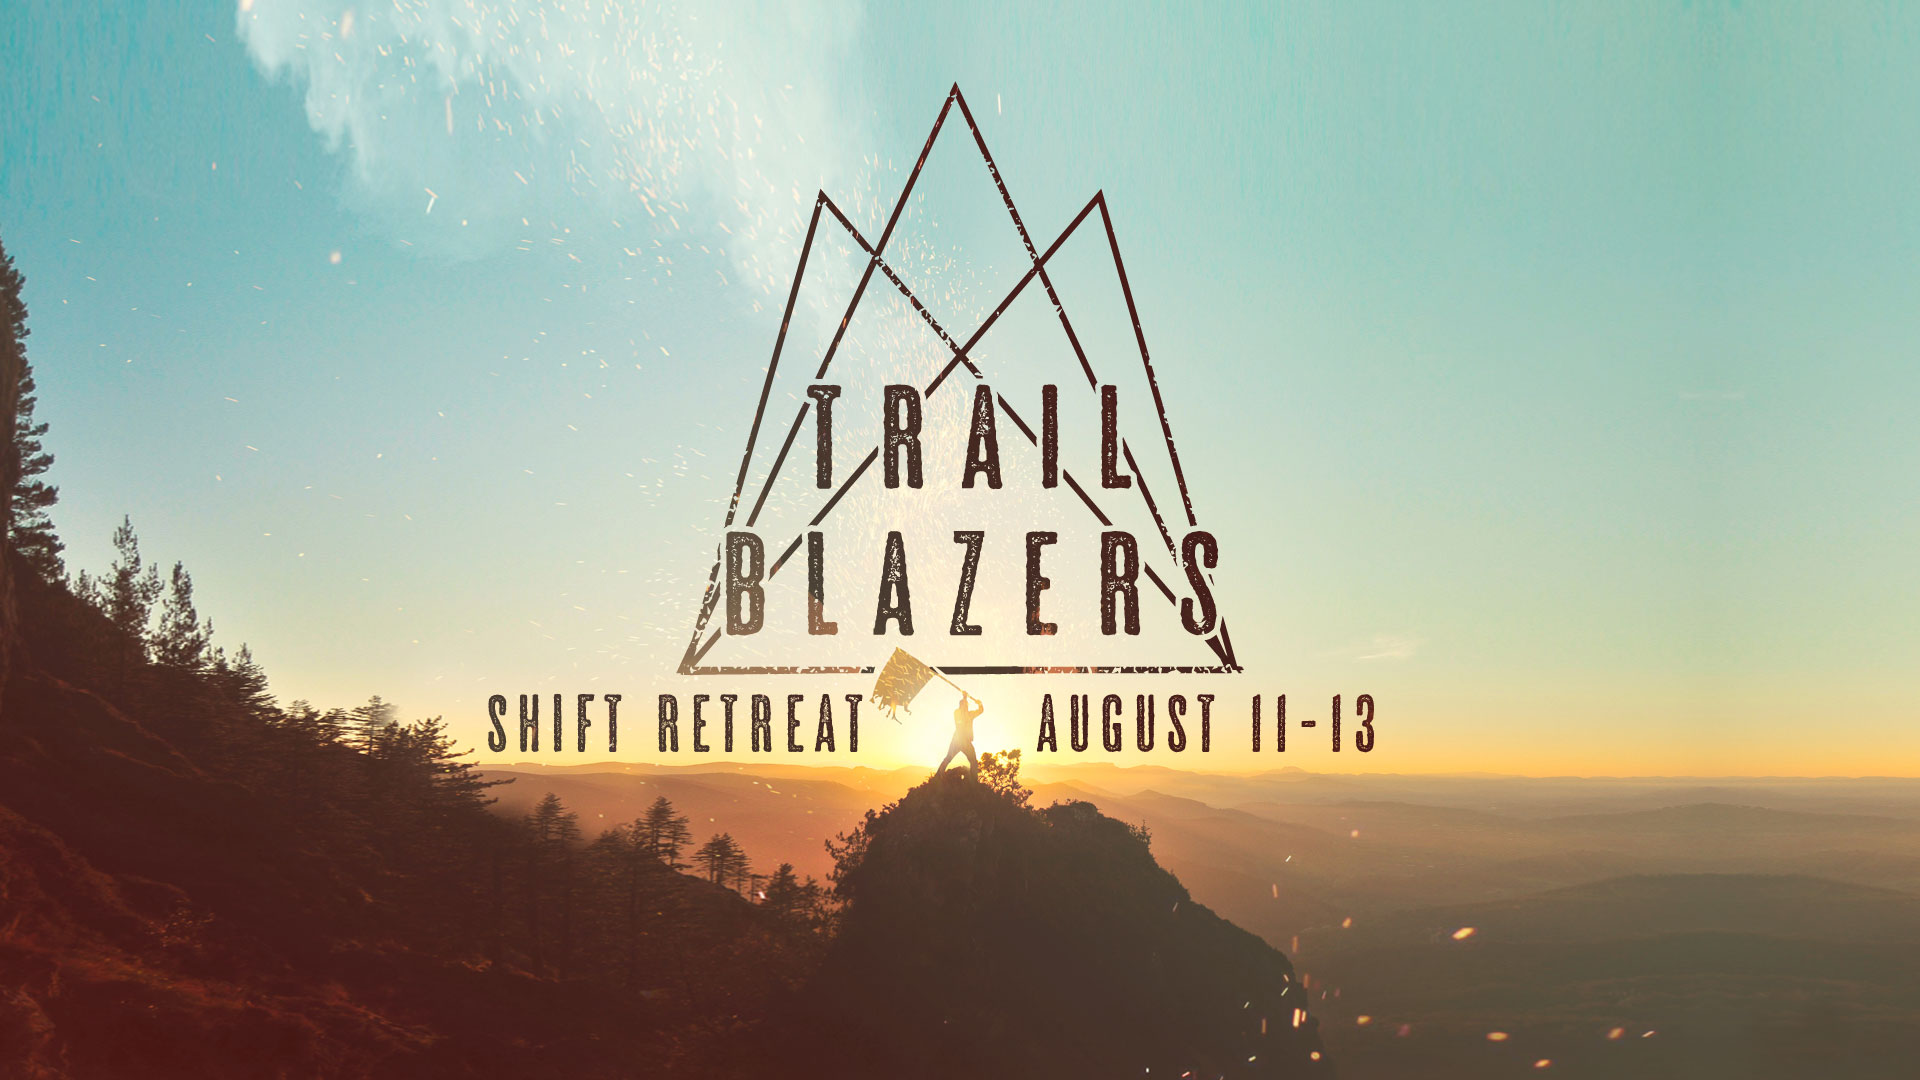 Trailblazers - Young Adults Retreat